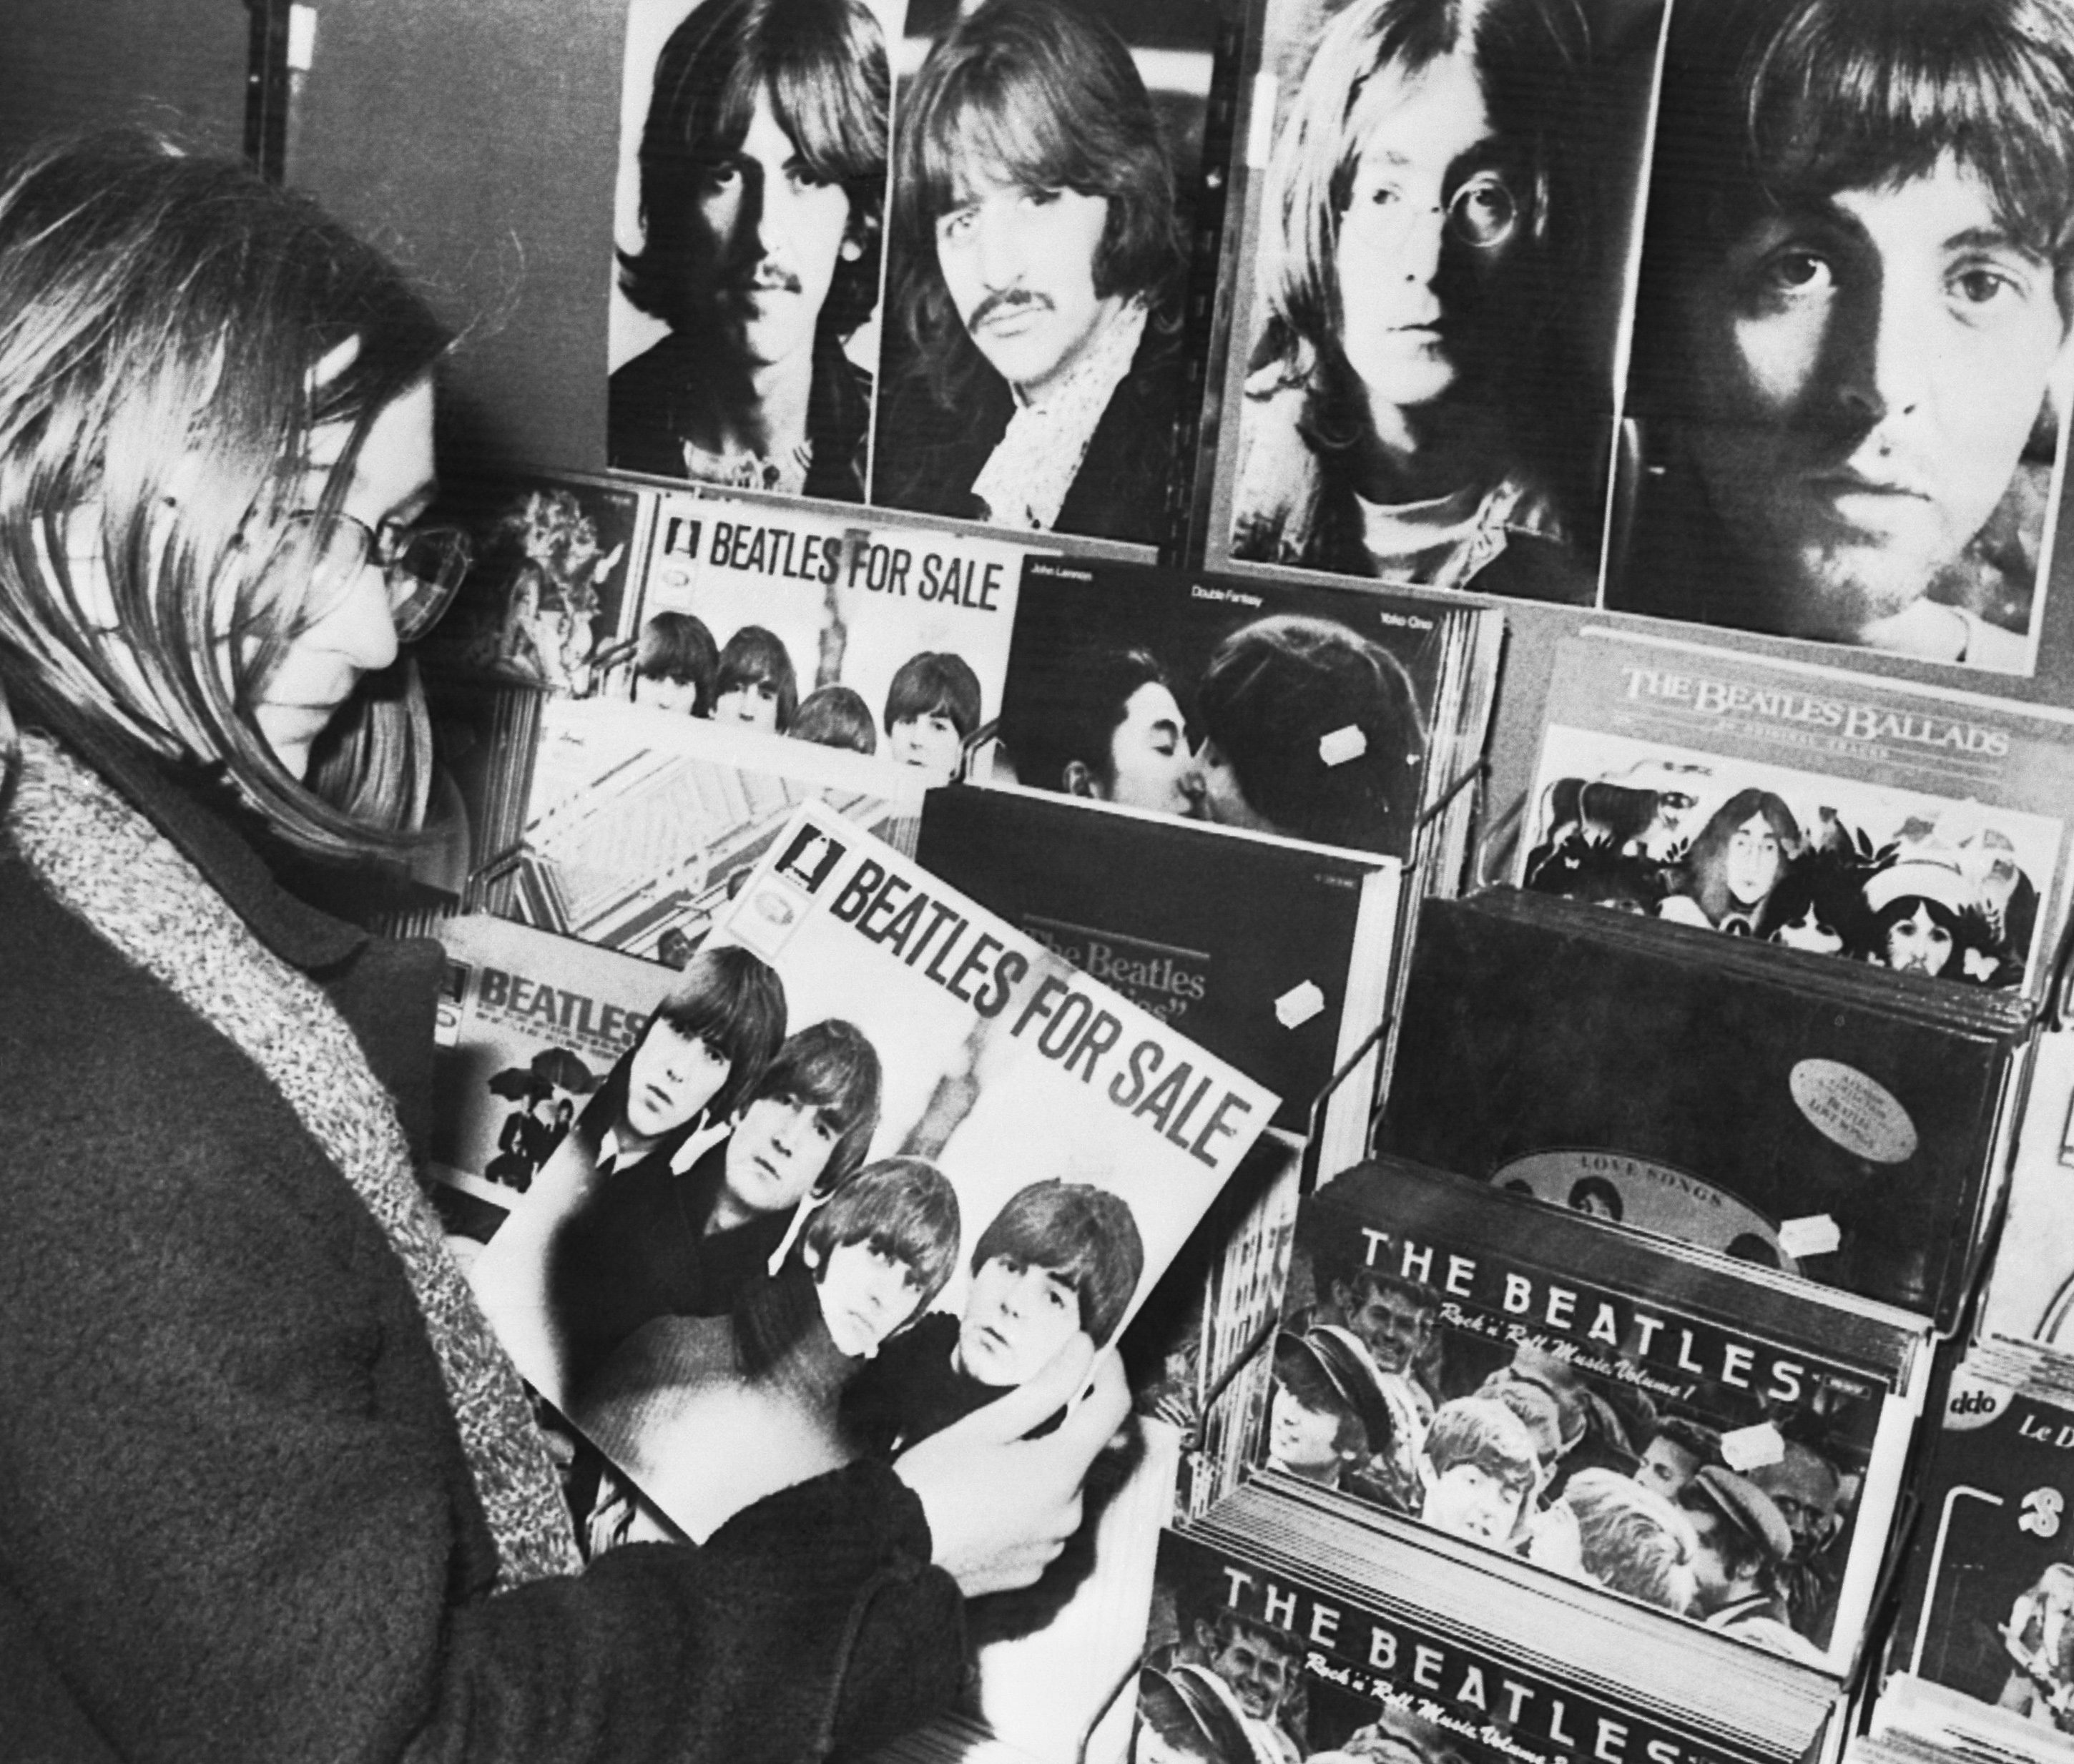 In this Dec. 10, 1980 file photo, a fan of British pop group The Beatles holds a vintage record album Beatles for Sale in a record shop in Stuttgart, Germany.A special stand with portraits of the four members of the group and all available records was erected this morning in memory of John Lennon who was killed in New York City. Thirty-five years ago on Dec. 8, Mark David Chapman shot and killed Lennon, a former Beatles member. (AP Photo/Thomas Meyer, File)